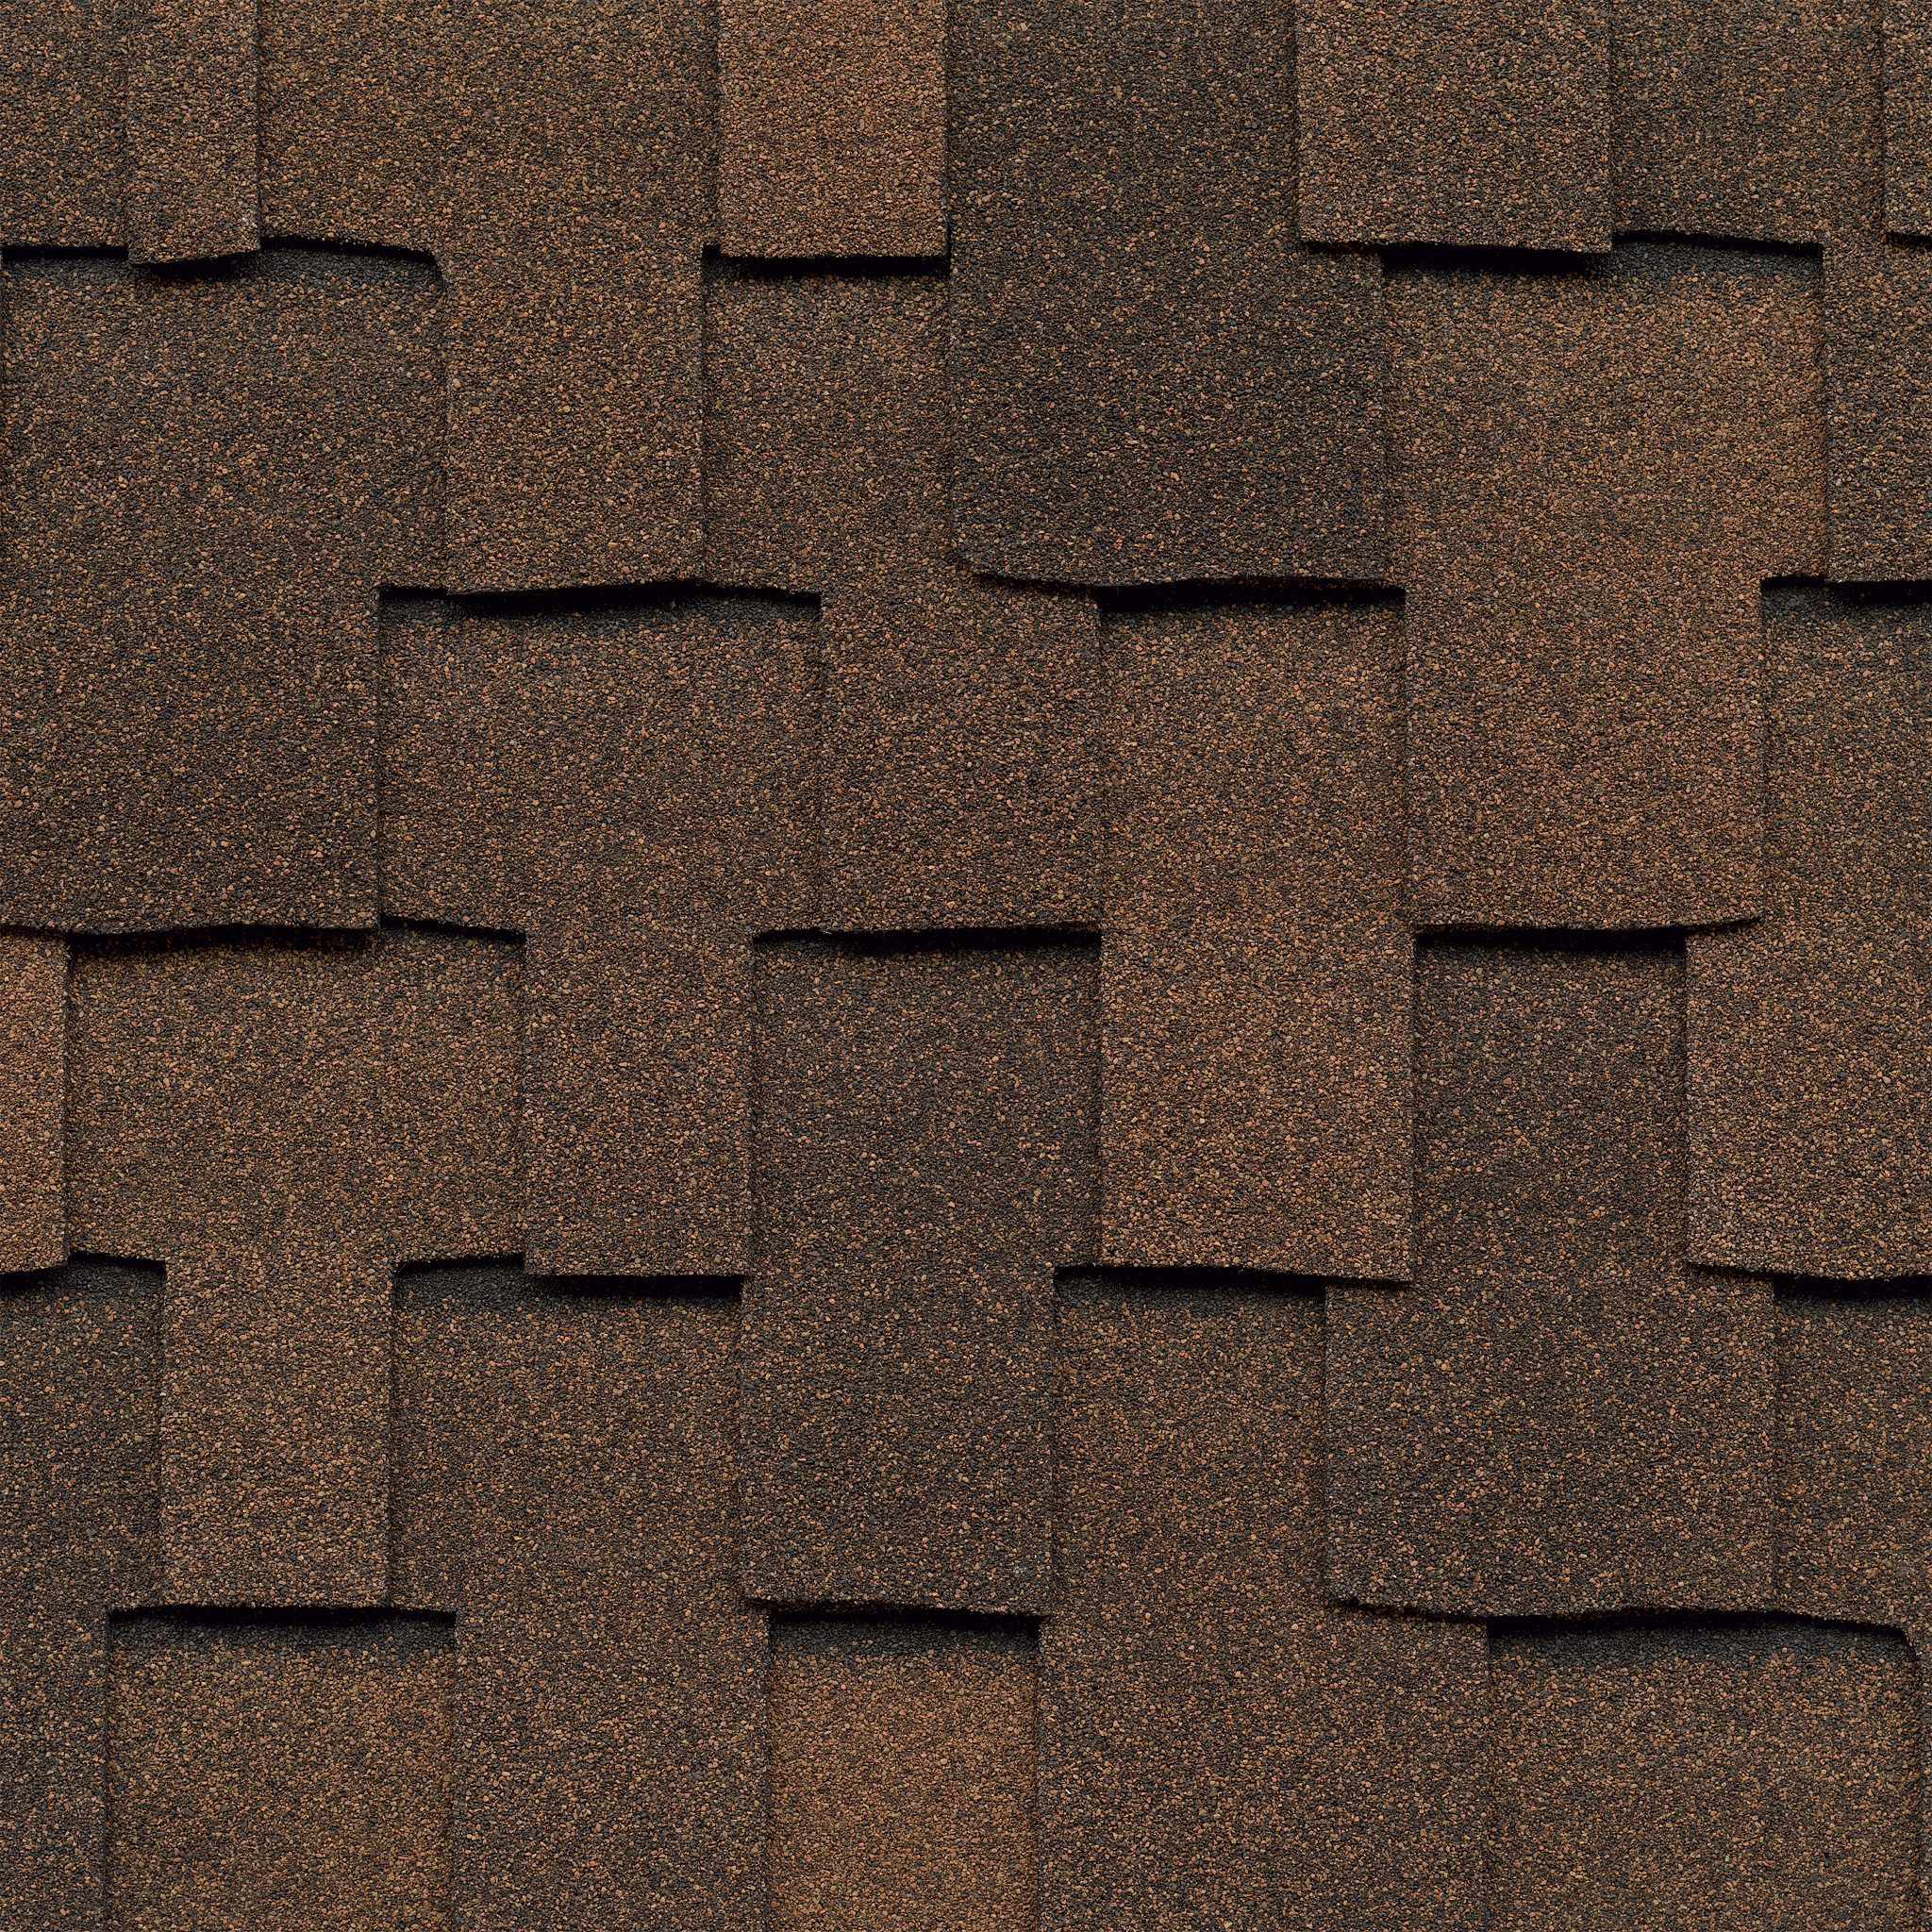 Close-up photo of GAF's Grand Sequoia Mesa Brown shingle swatches